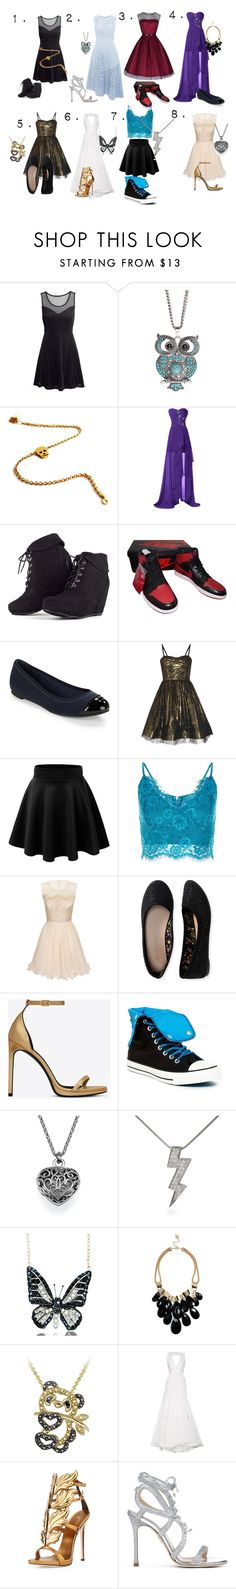 """""""Which Is Your Style"""" by because-it-is on Polyvore featuring Aéropostale, Patricia Nicolas, NIKE, Jack Rogers, Alice + Olivia, Chi Chi, Yves Saint Laurent, Converse, Andrew Hamilton Crawford and GUESS"""